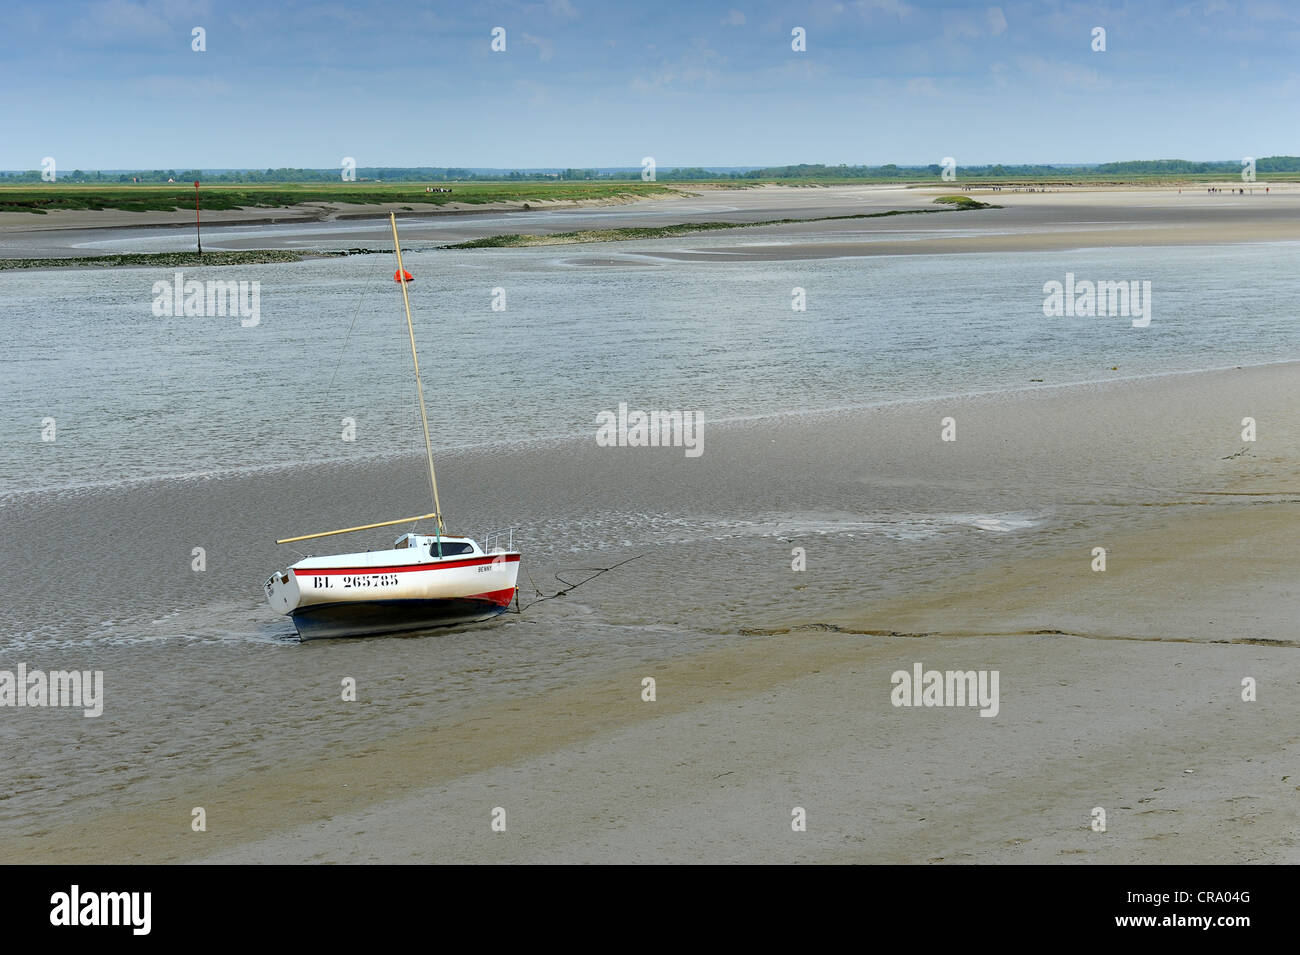 Baie de Somme River Somme St Valery Sur Somme Picardy France - Stock Image